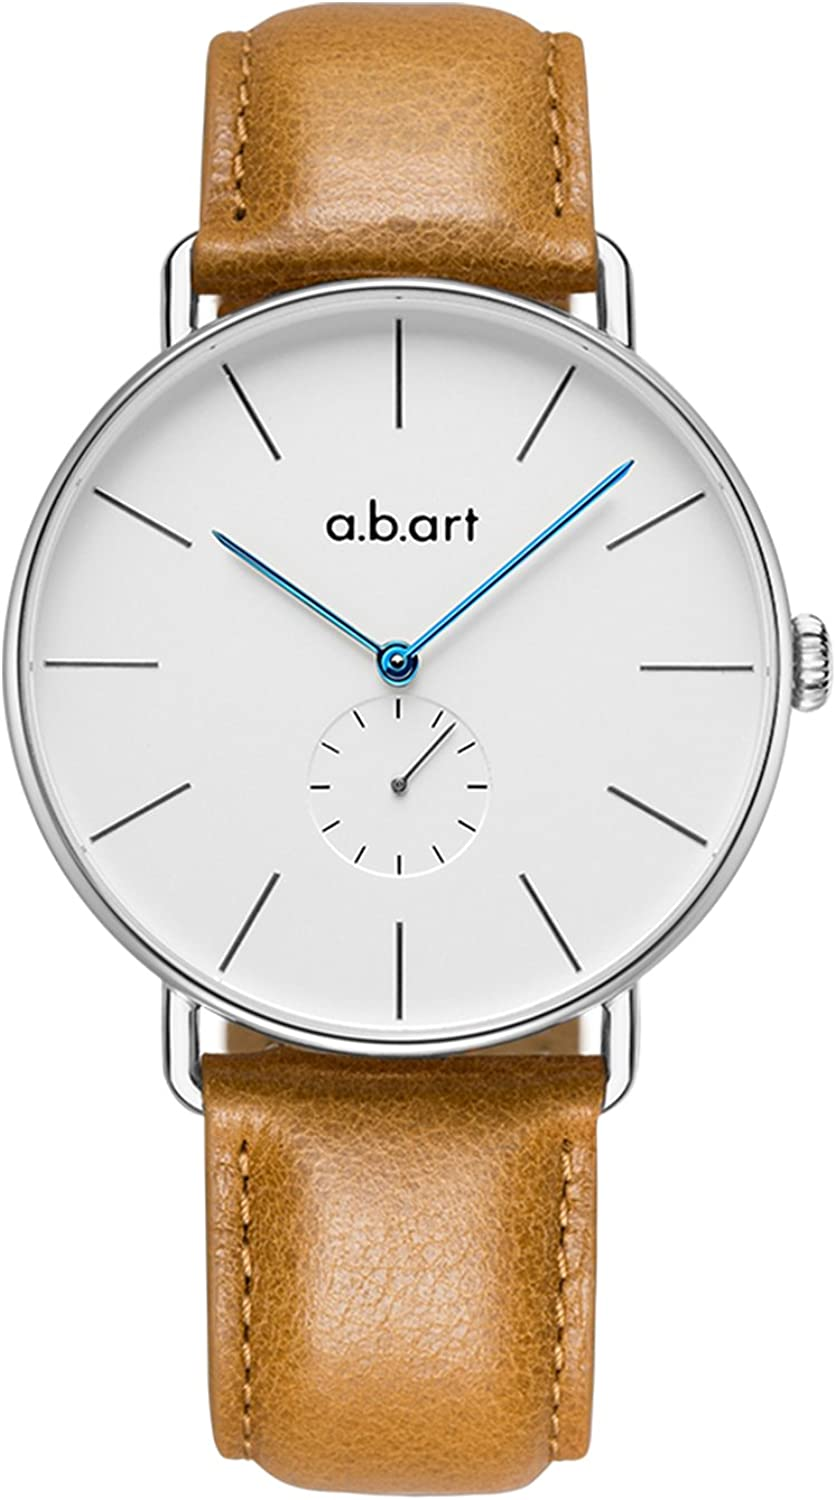 abart FR41-101 Men Watches Silver Case Swiss Movement Watches for Men Fashion Watch for Men